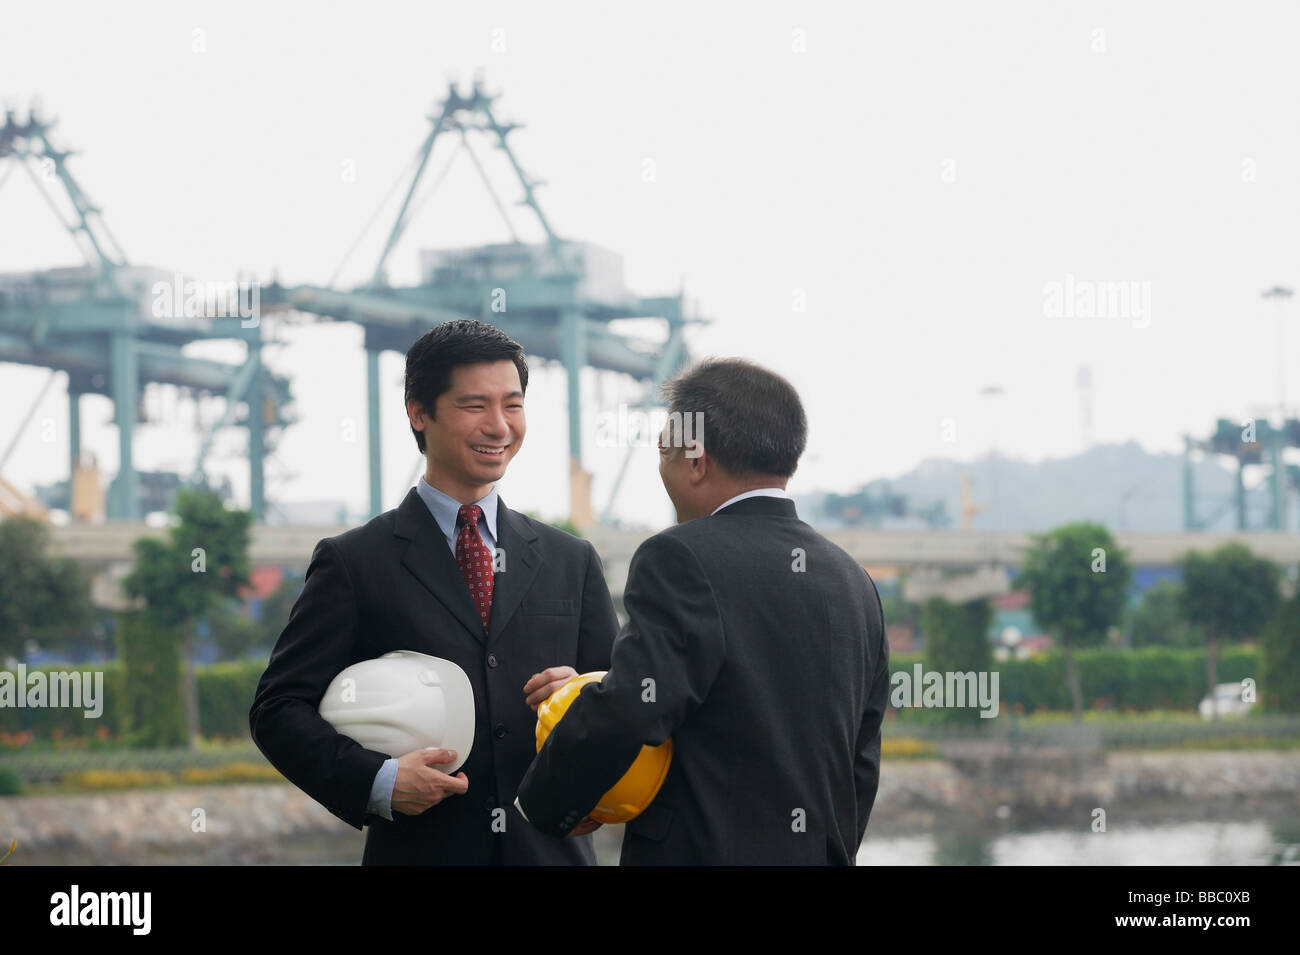 Businessmen with helmets having a conversation - Stock Image